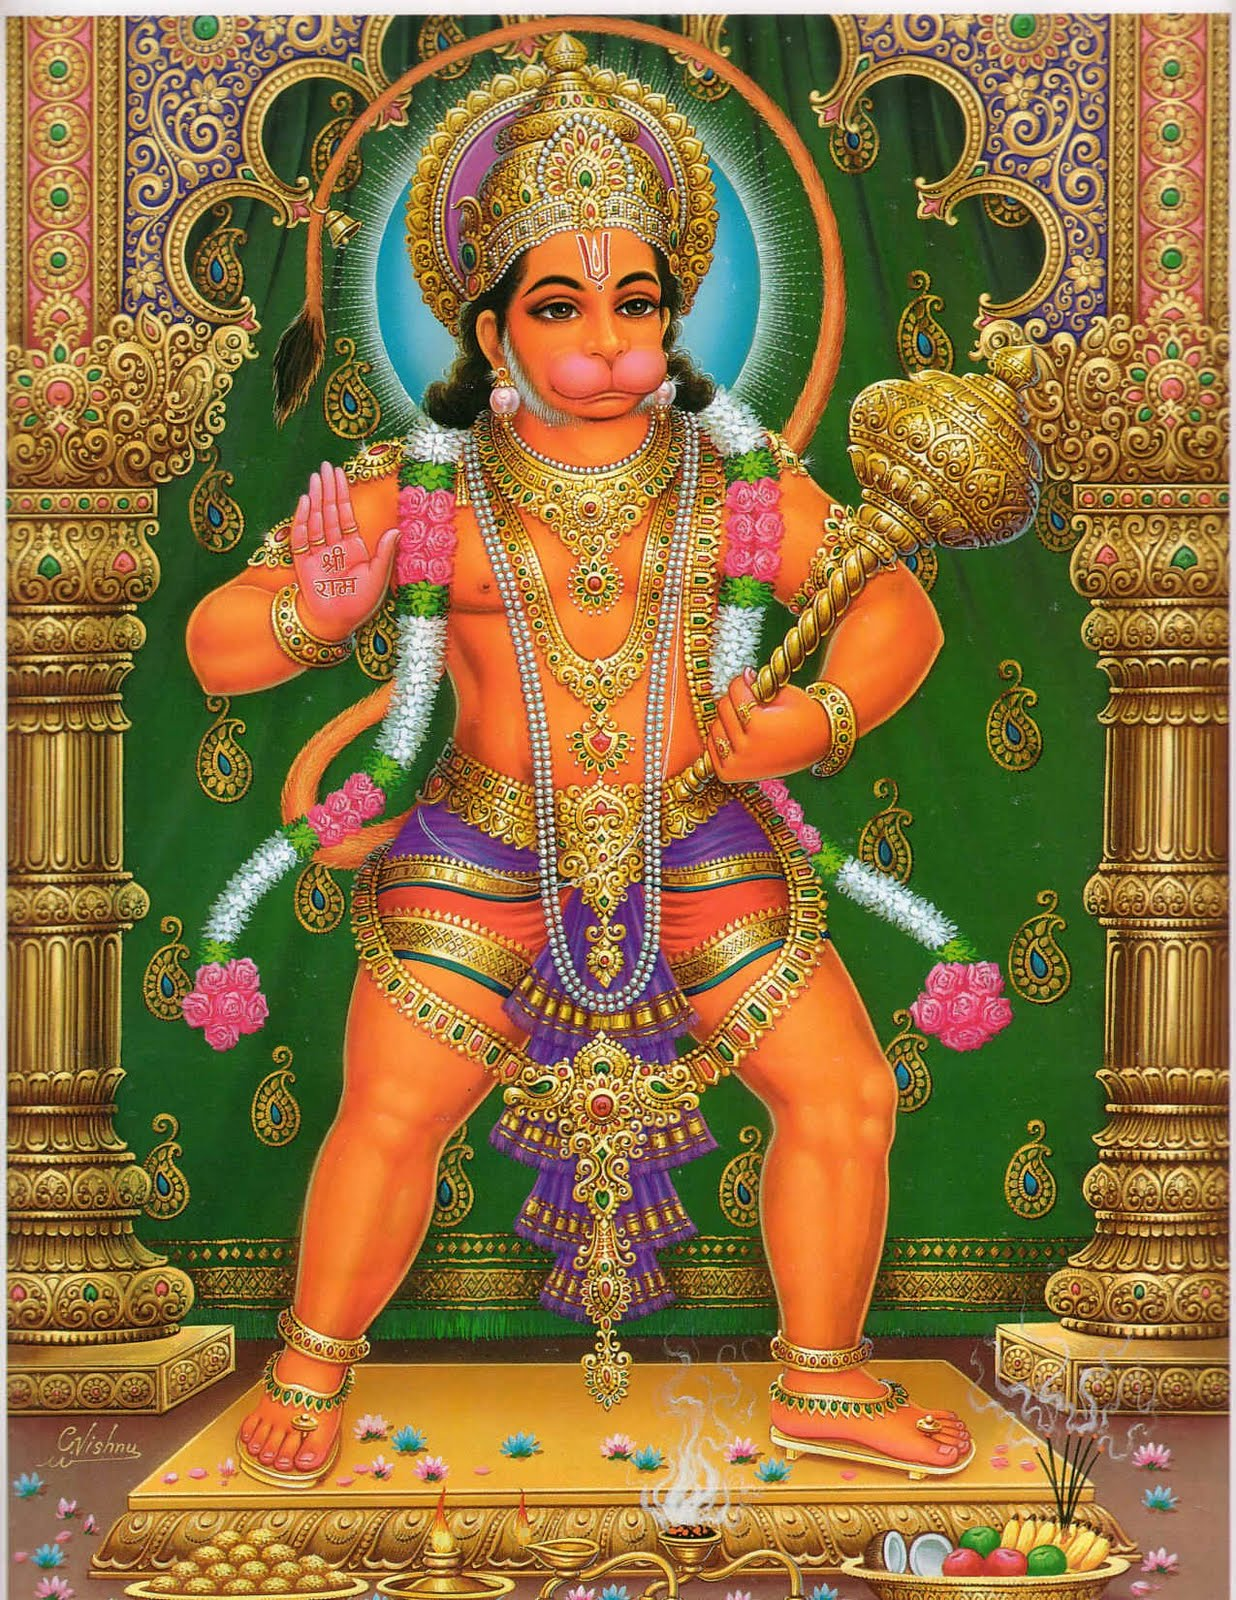 Hanuman Ji Photos Images Wallpapers Gallery